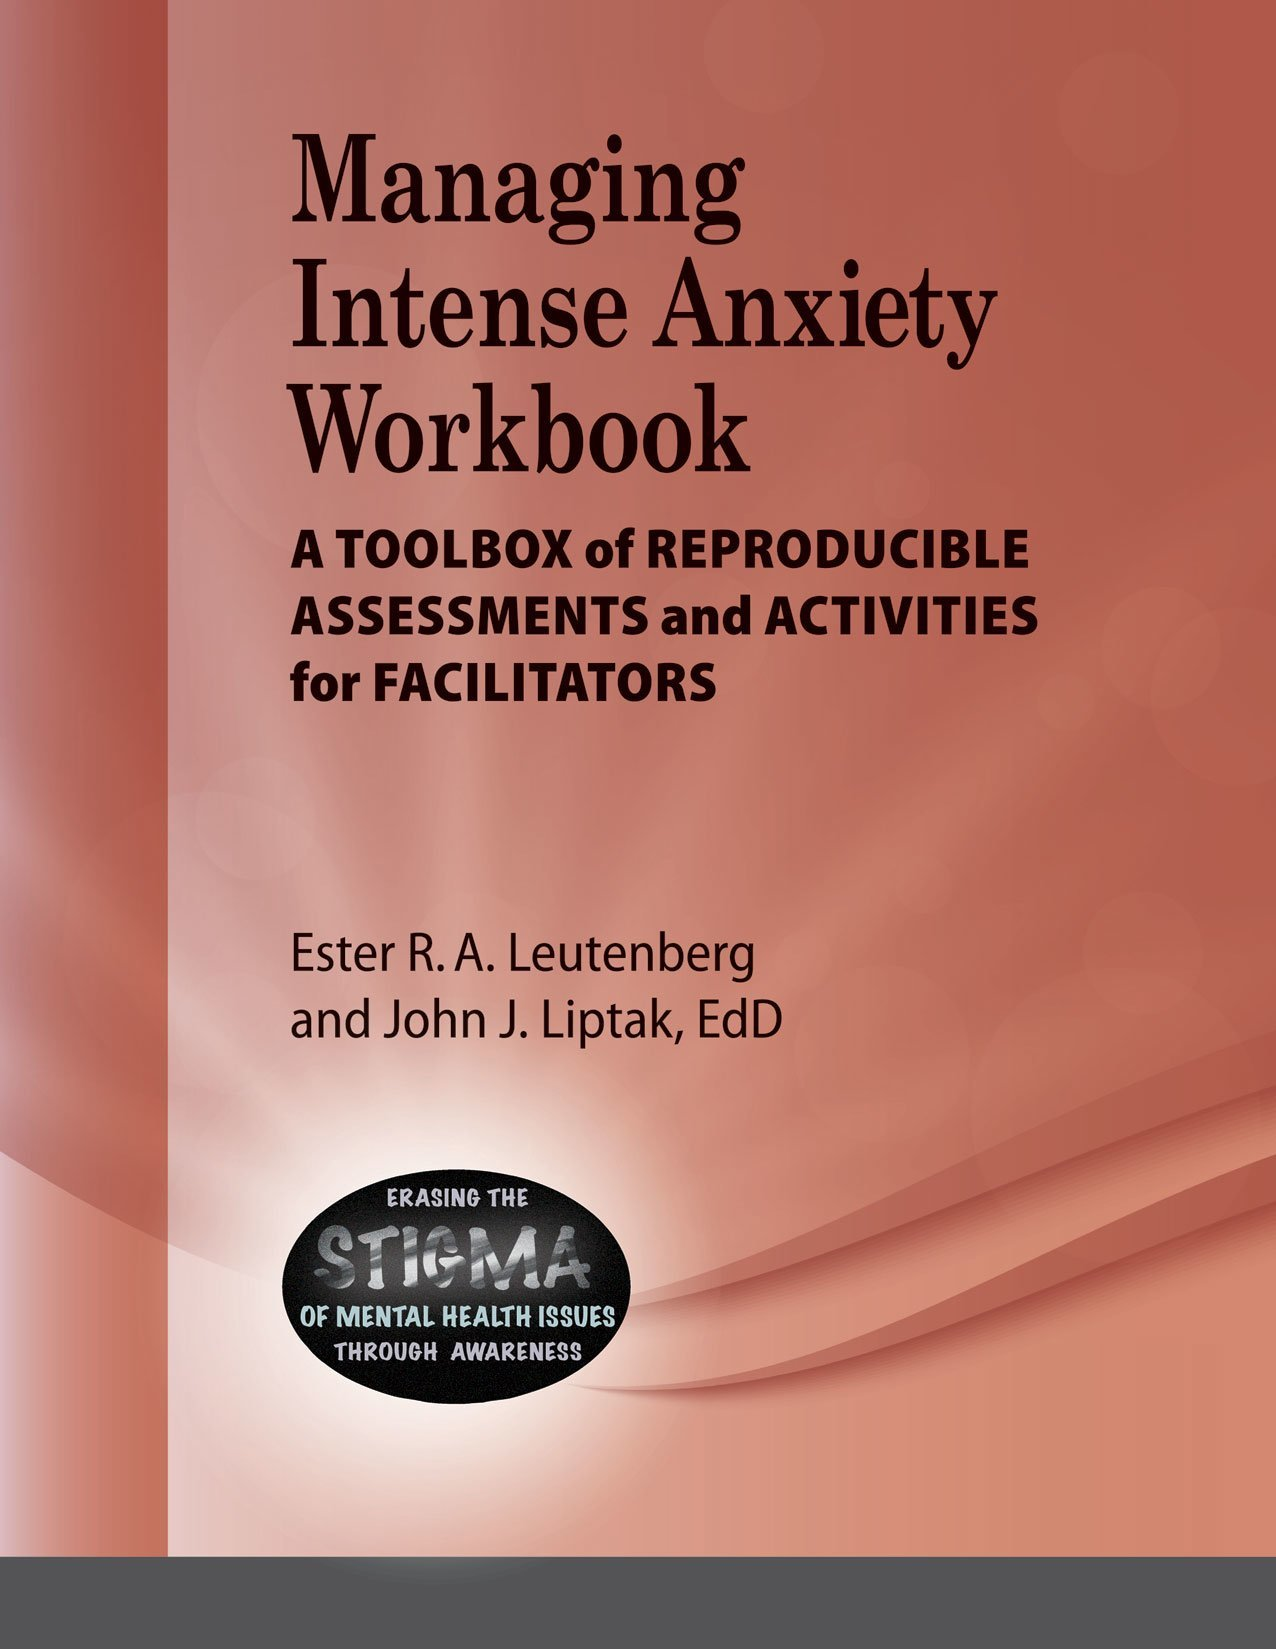 Managing Intense Anxiety Workbook